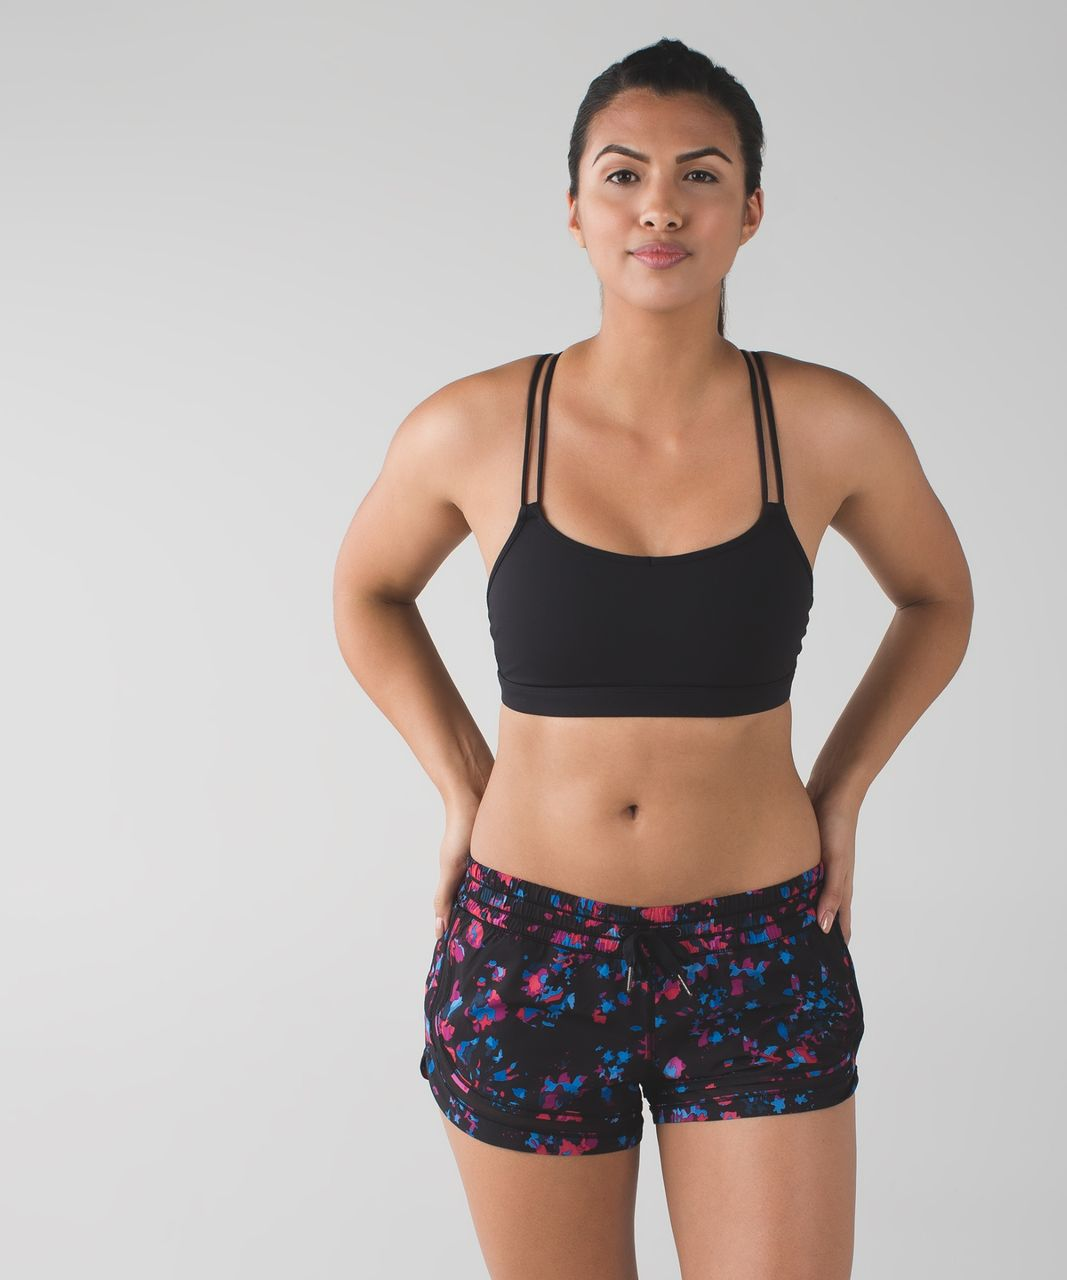 Lululemon Make A Move Bra - Black